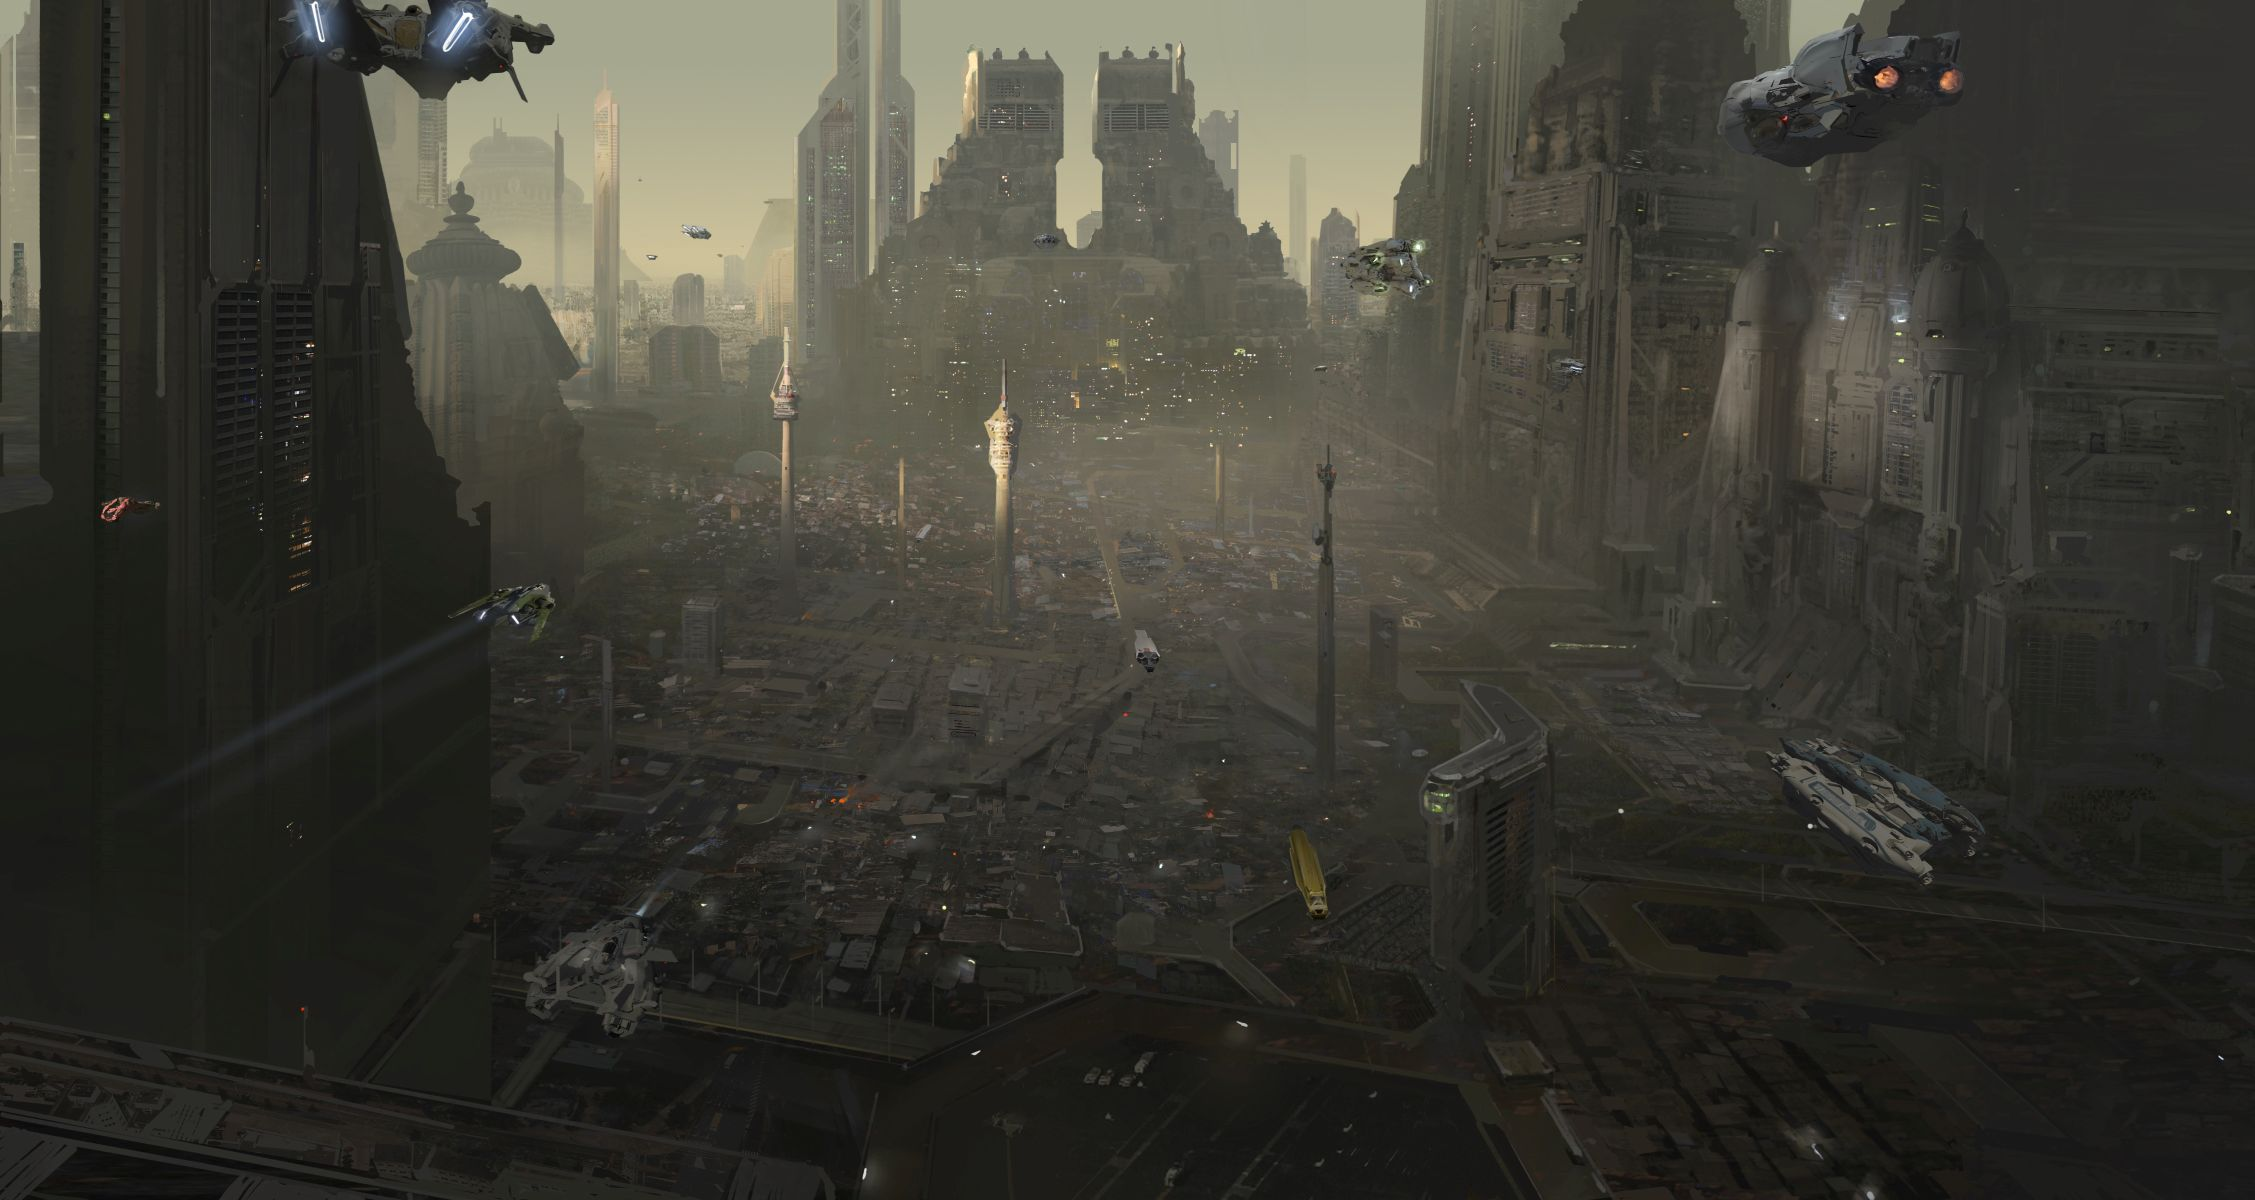 Dreadnought_City